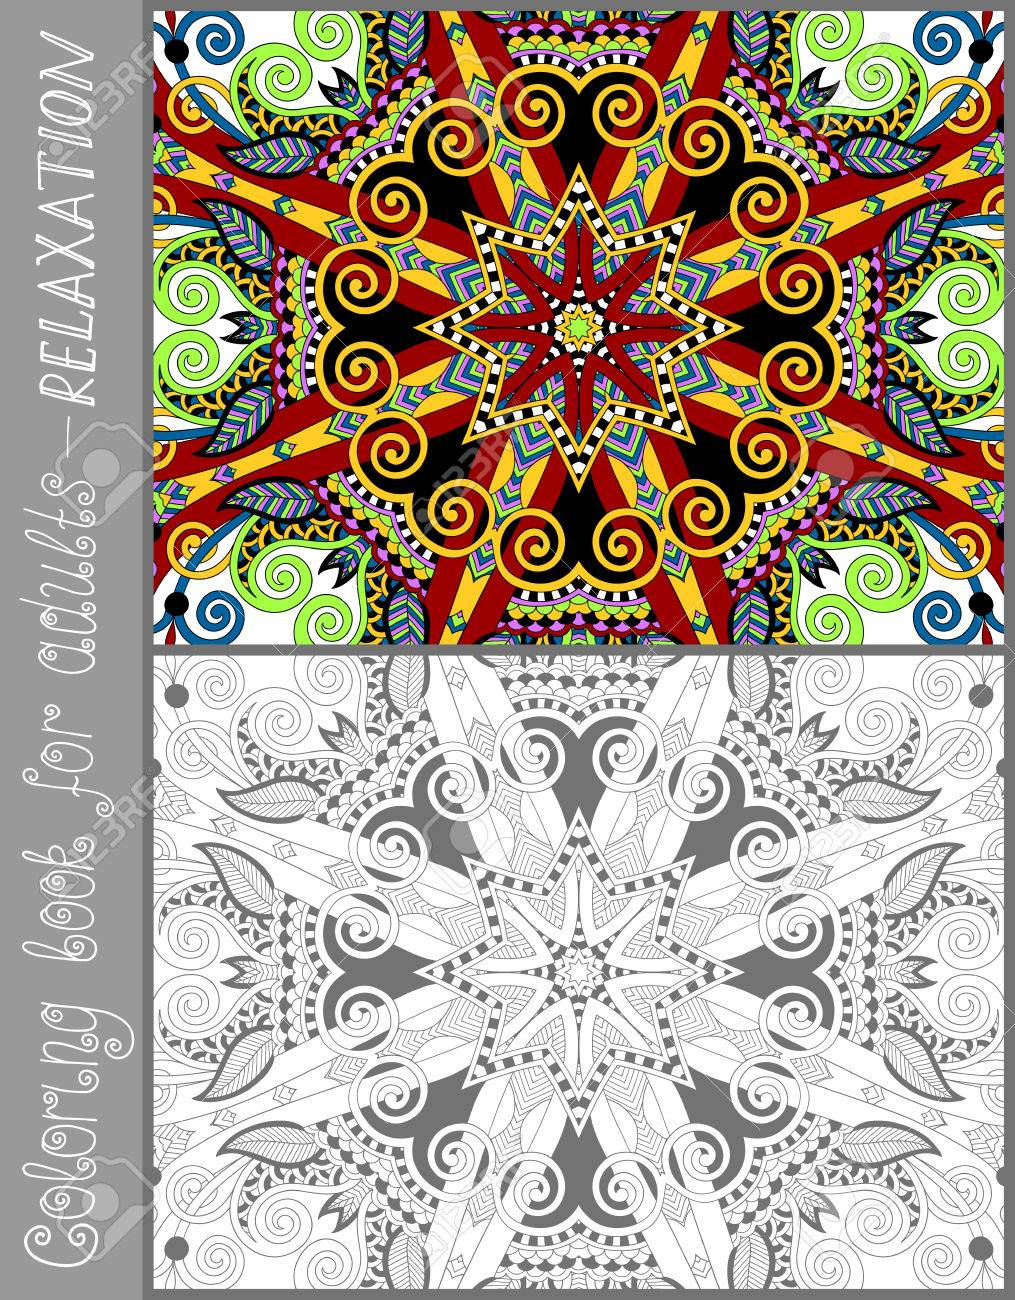 Unique Coloring Book Page For Adults Flower Paisley Design Joy To Older Children And